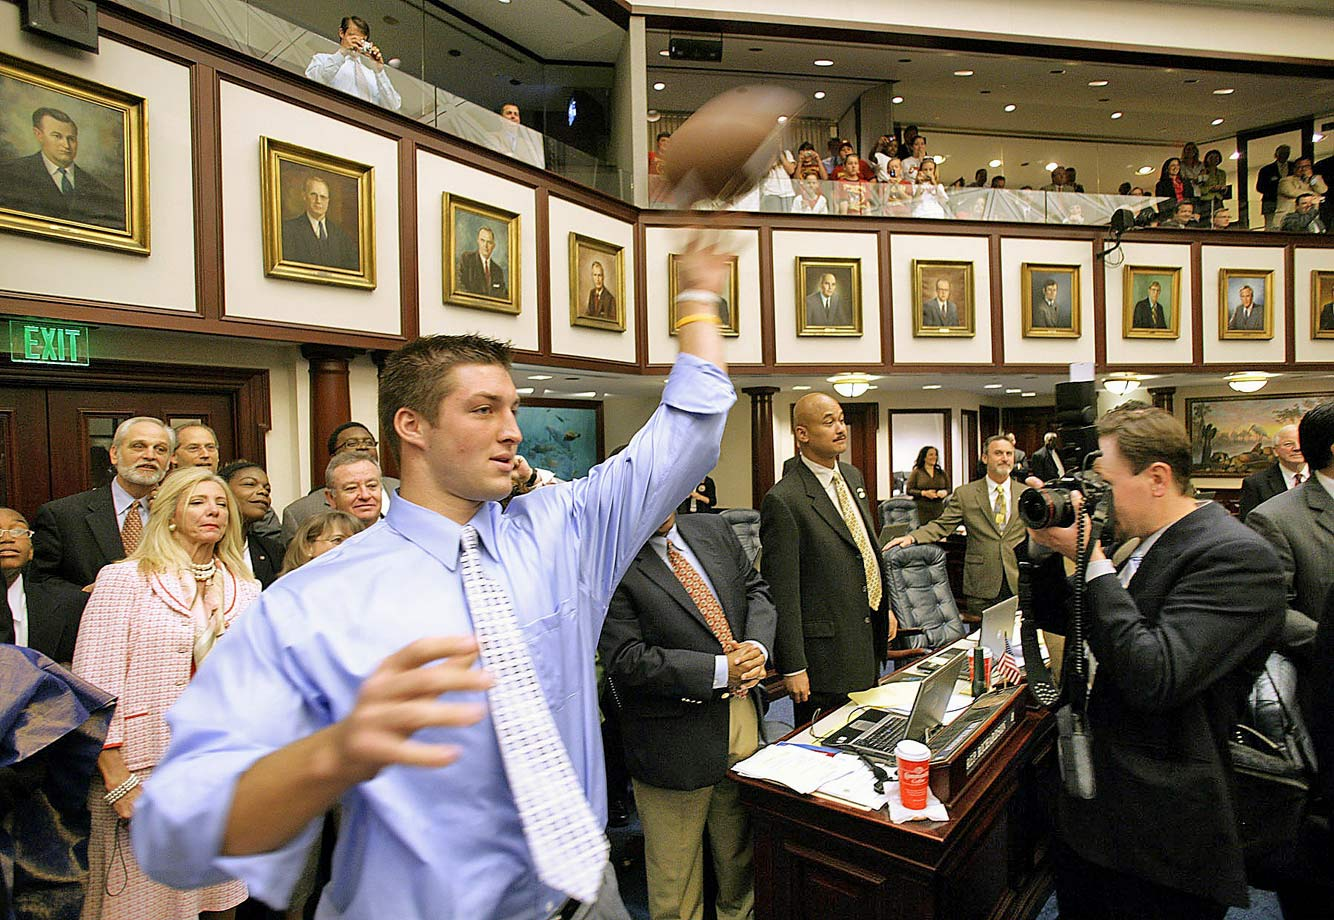 Tim Tebow throws a pass to Marco Rubio, Speaker of the Florida House of Represenatives, in the house chamber at the Capitol in Tallahassee, Fla. Tebow was honored at the Florida State Capitol after he won the Heisman trophy and was part of Florida's national championship team.